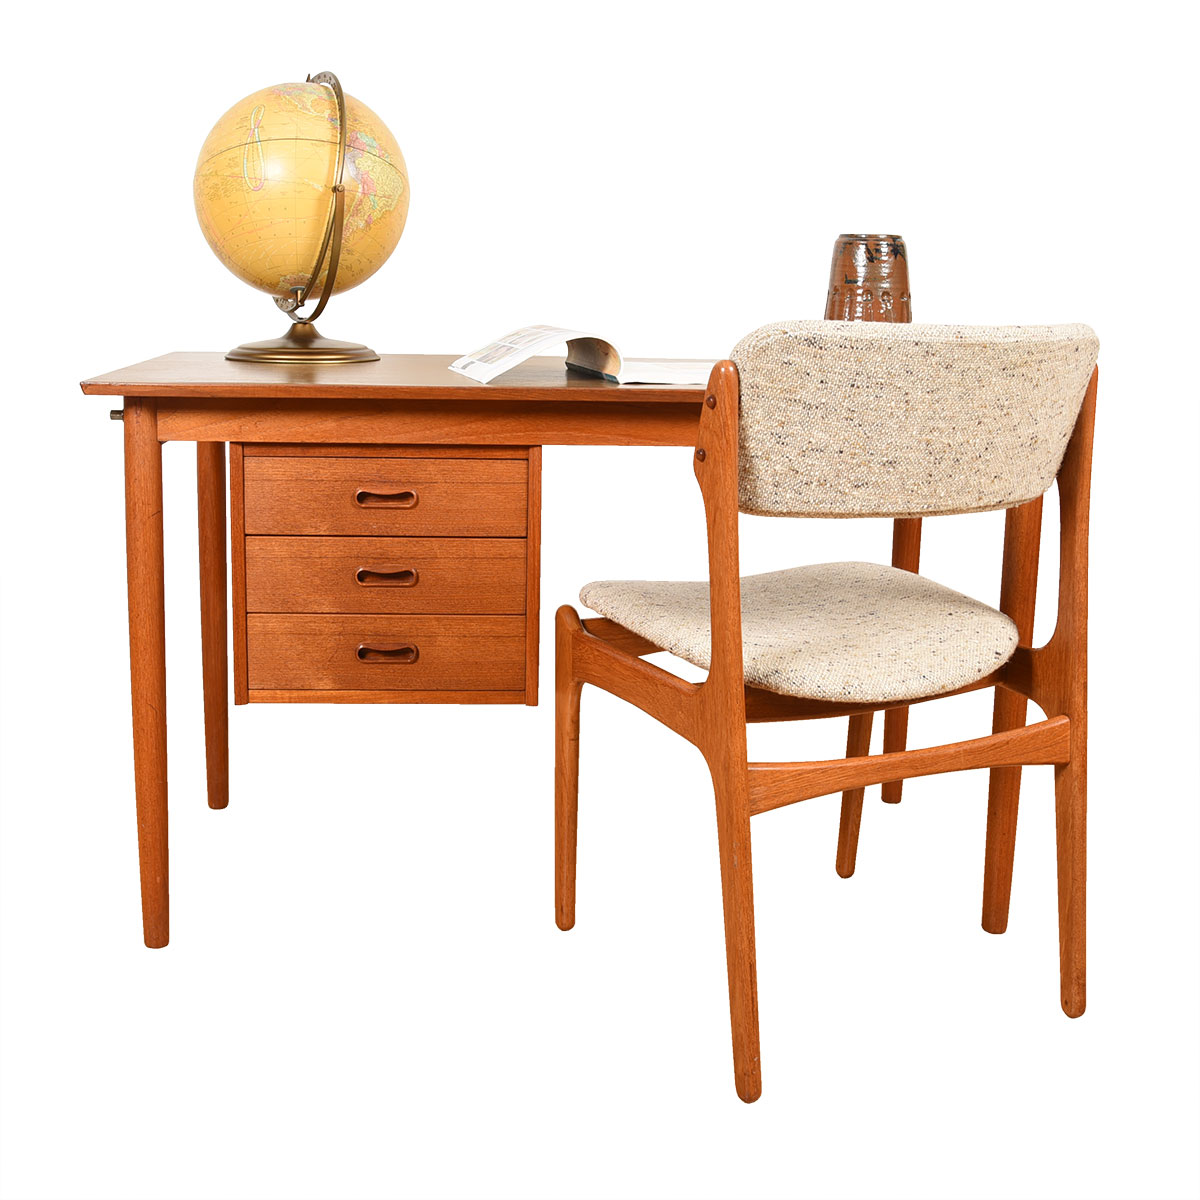 Danish Modern Teak Desk with L-to-R Movable Drawers